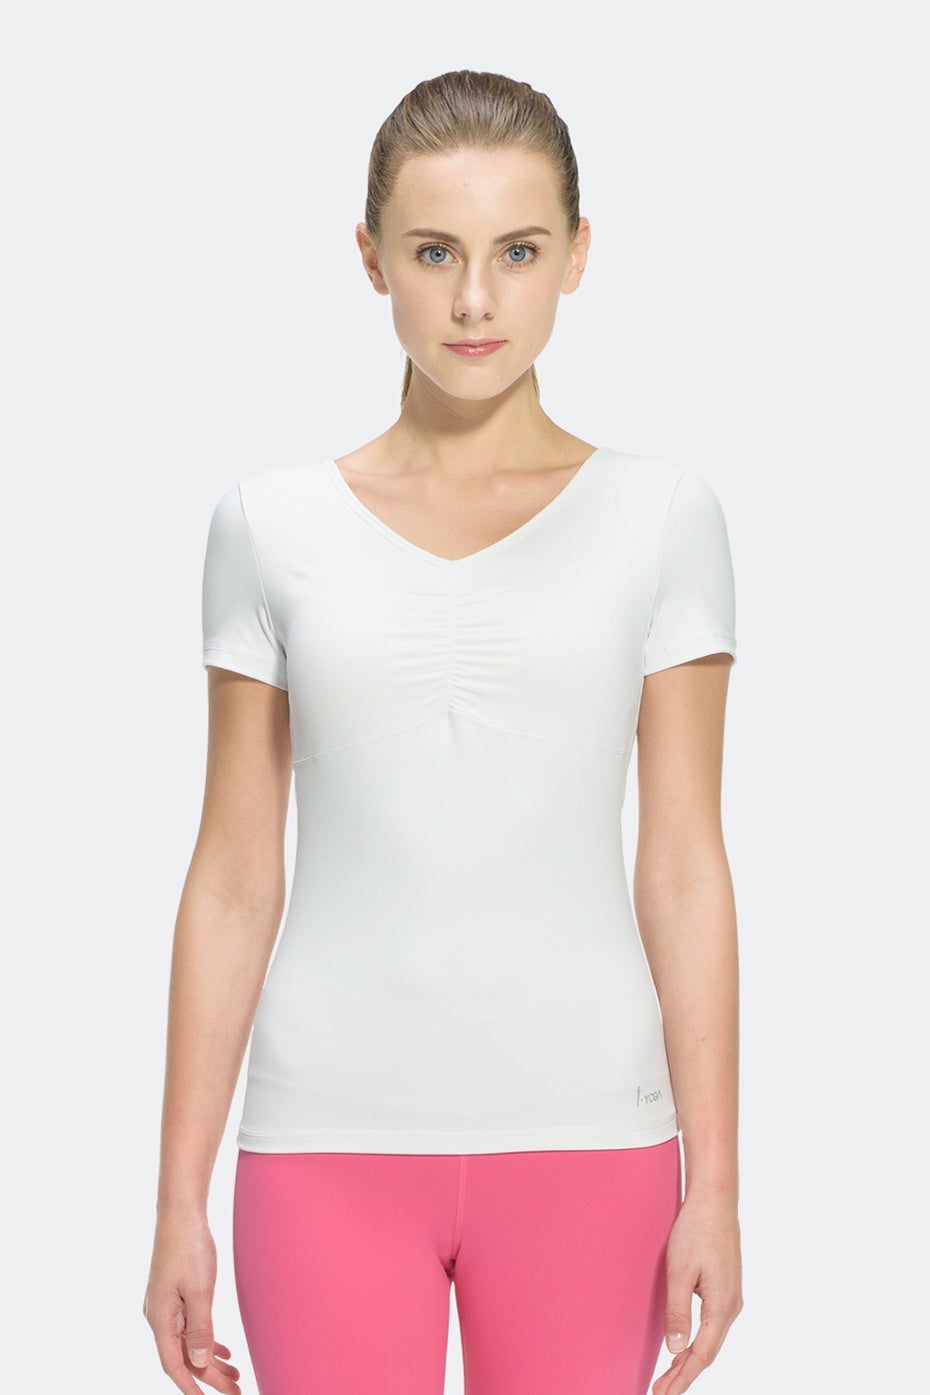 Ongasoft Yoga Tops-T006White-Front